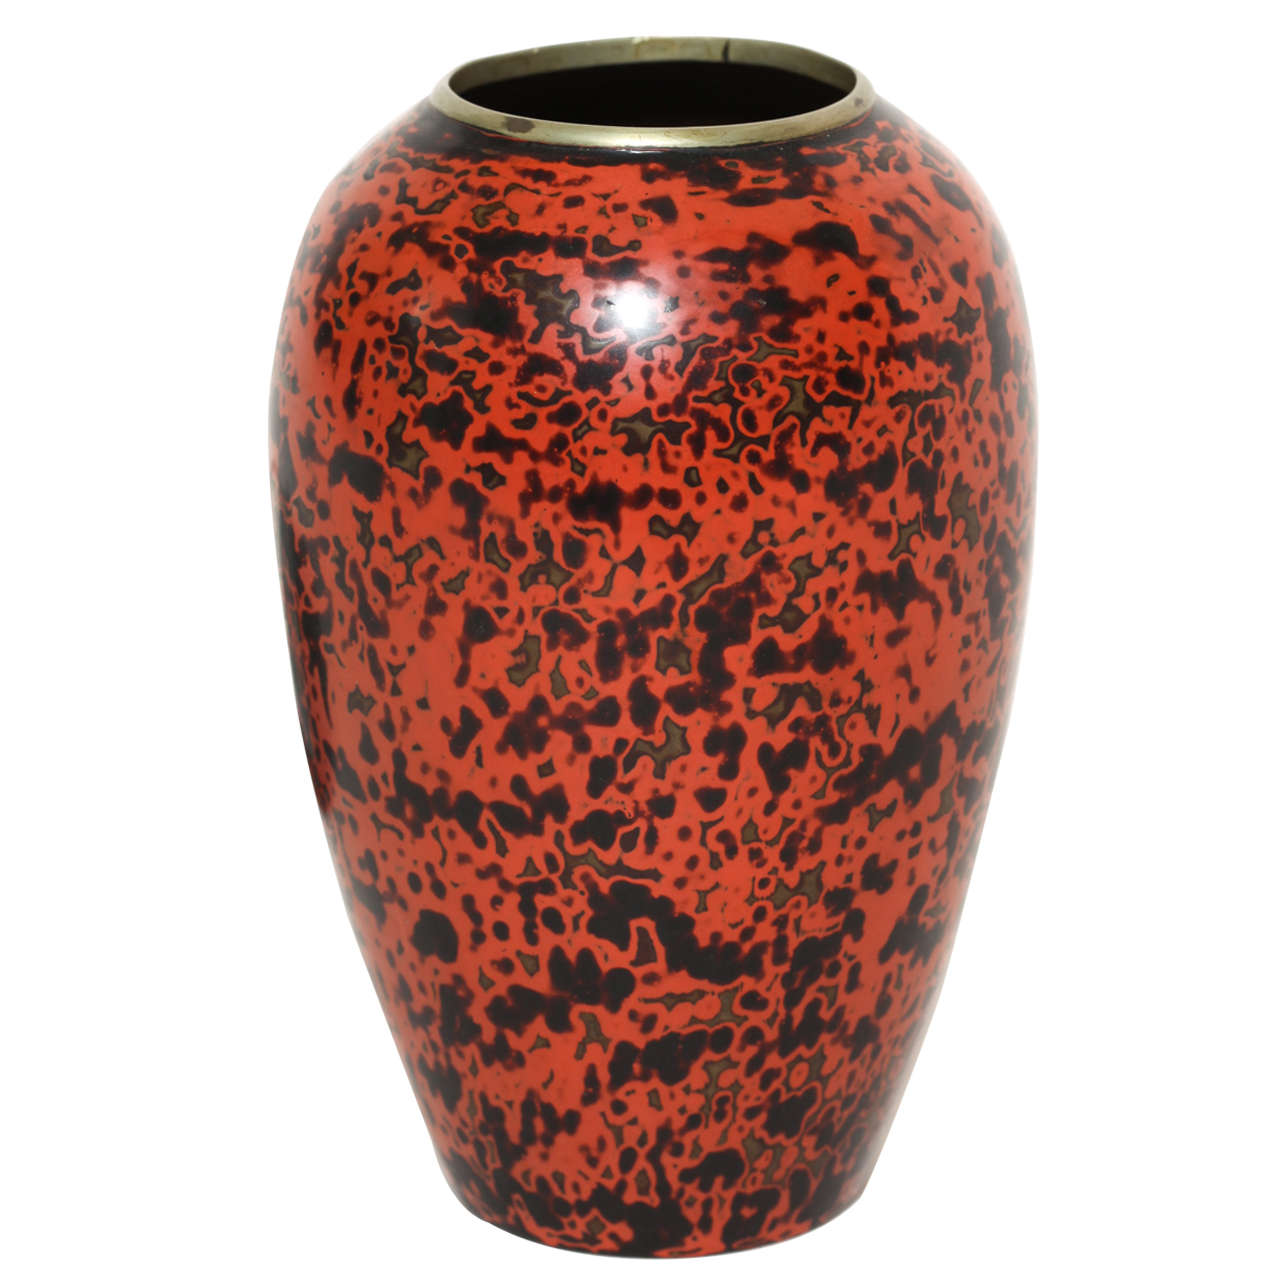 Jean dunand vases 12 for sale at 1stdibs jean dunand french art deco ovoid red and black lacquered brass vase reviewsmspy